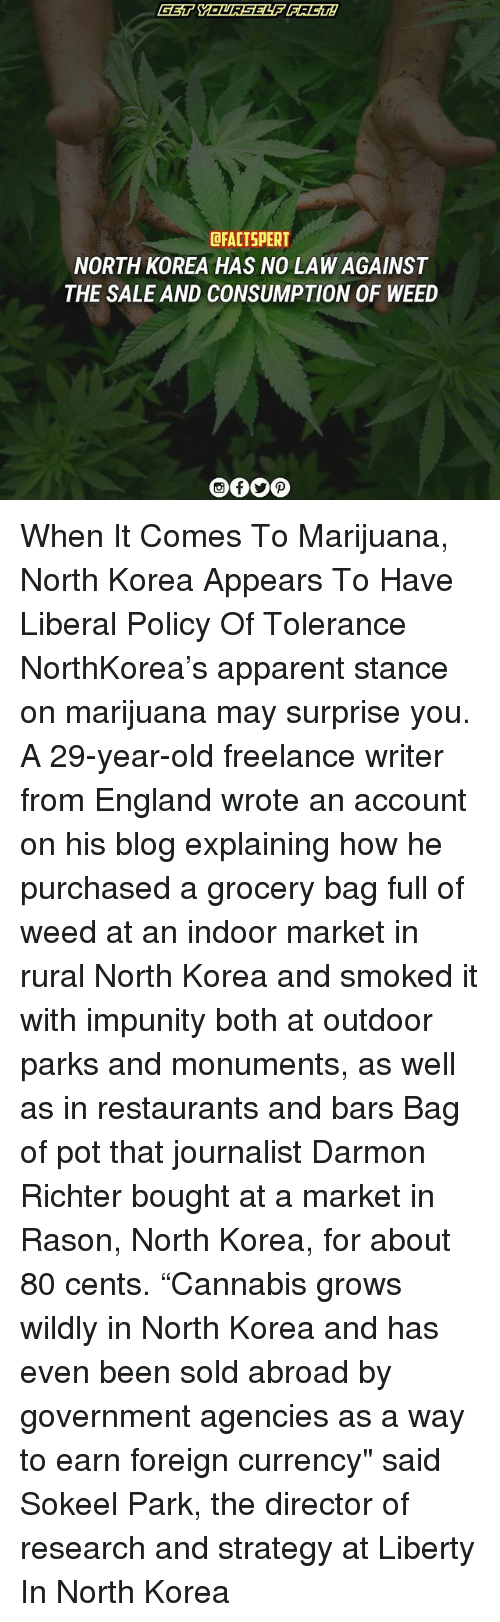 "England, Memes, and North Korea: dFACTSPERT  NORTH KOREA HAS NO LAW AGAINST  THE SALE AND CONSUMPTION OF WEED When It Comes To Marijuana, North Korea Appears To Have Liberal Policy Of Tolerance NorthKorea's apparent stance on marijuana may surprise you. A 29-year-old freelance writer from England wrote an account on his blog explaining how he purchased a grocery bag full of weed at an indoor market in rural North Korea and smoked it with impunity both at outdoor parks and monuments, as well as in restaurants and bars Bag of pot that journalist Darmon Richter bought at a market in Rason, North Korea, for about 80 cents. ""Cannabis grows wildly in North Korea and has even been sold abroad by government agencies as a way to earn foreign currency"" said Sokeel Park, the director of research and strategy at Liberty In North Korea"